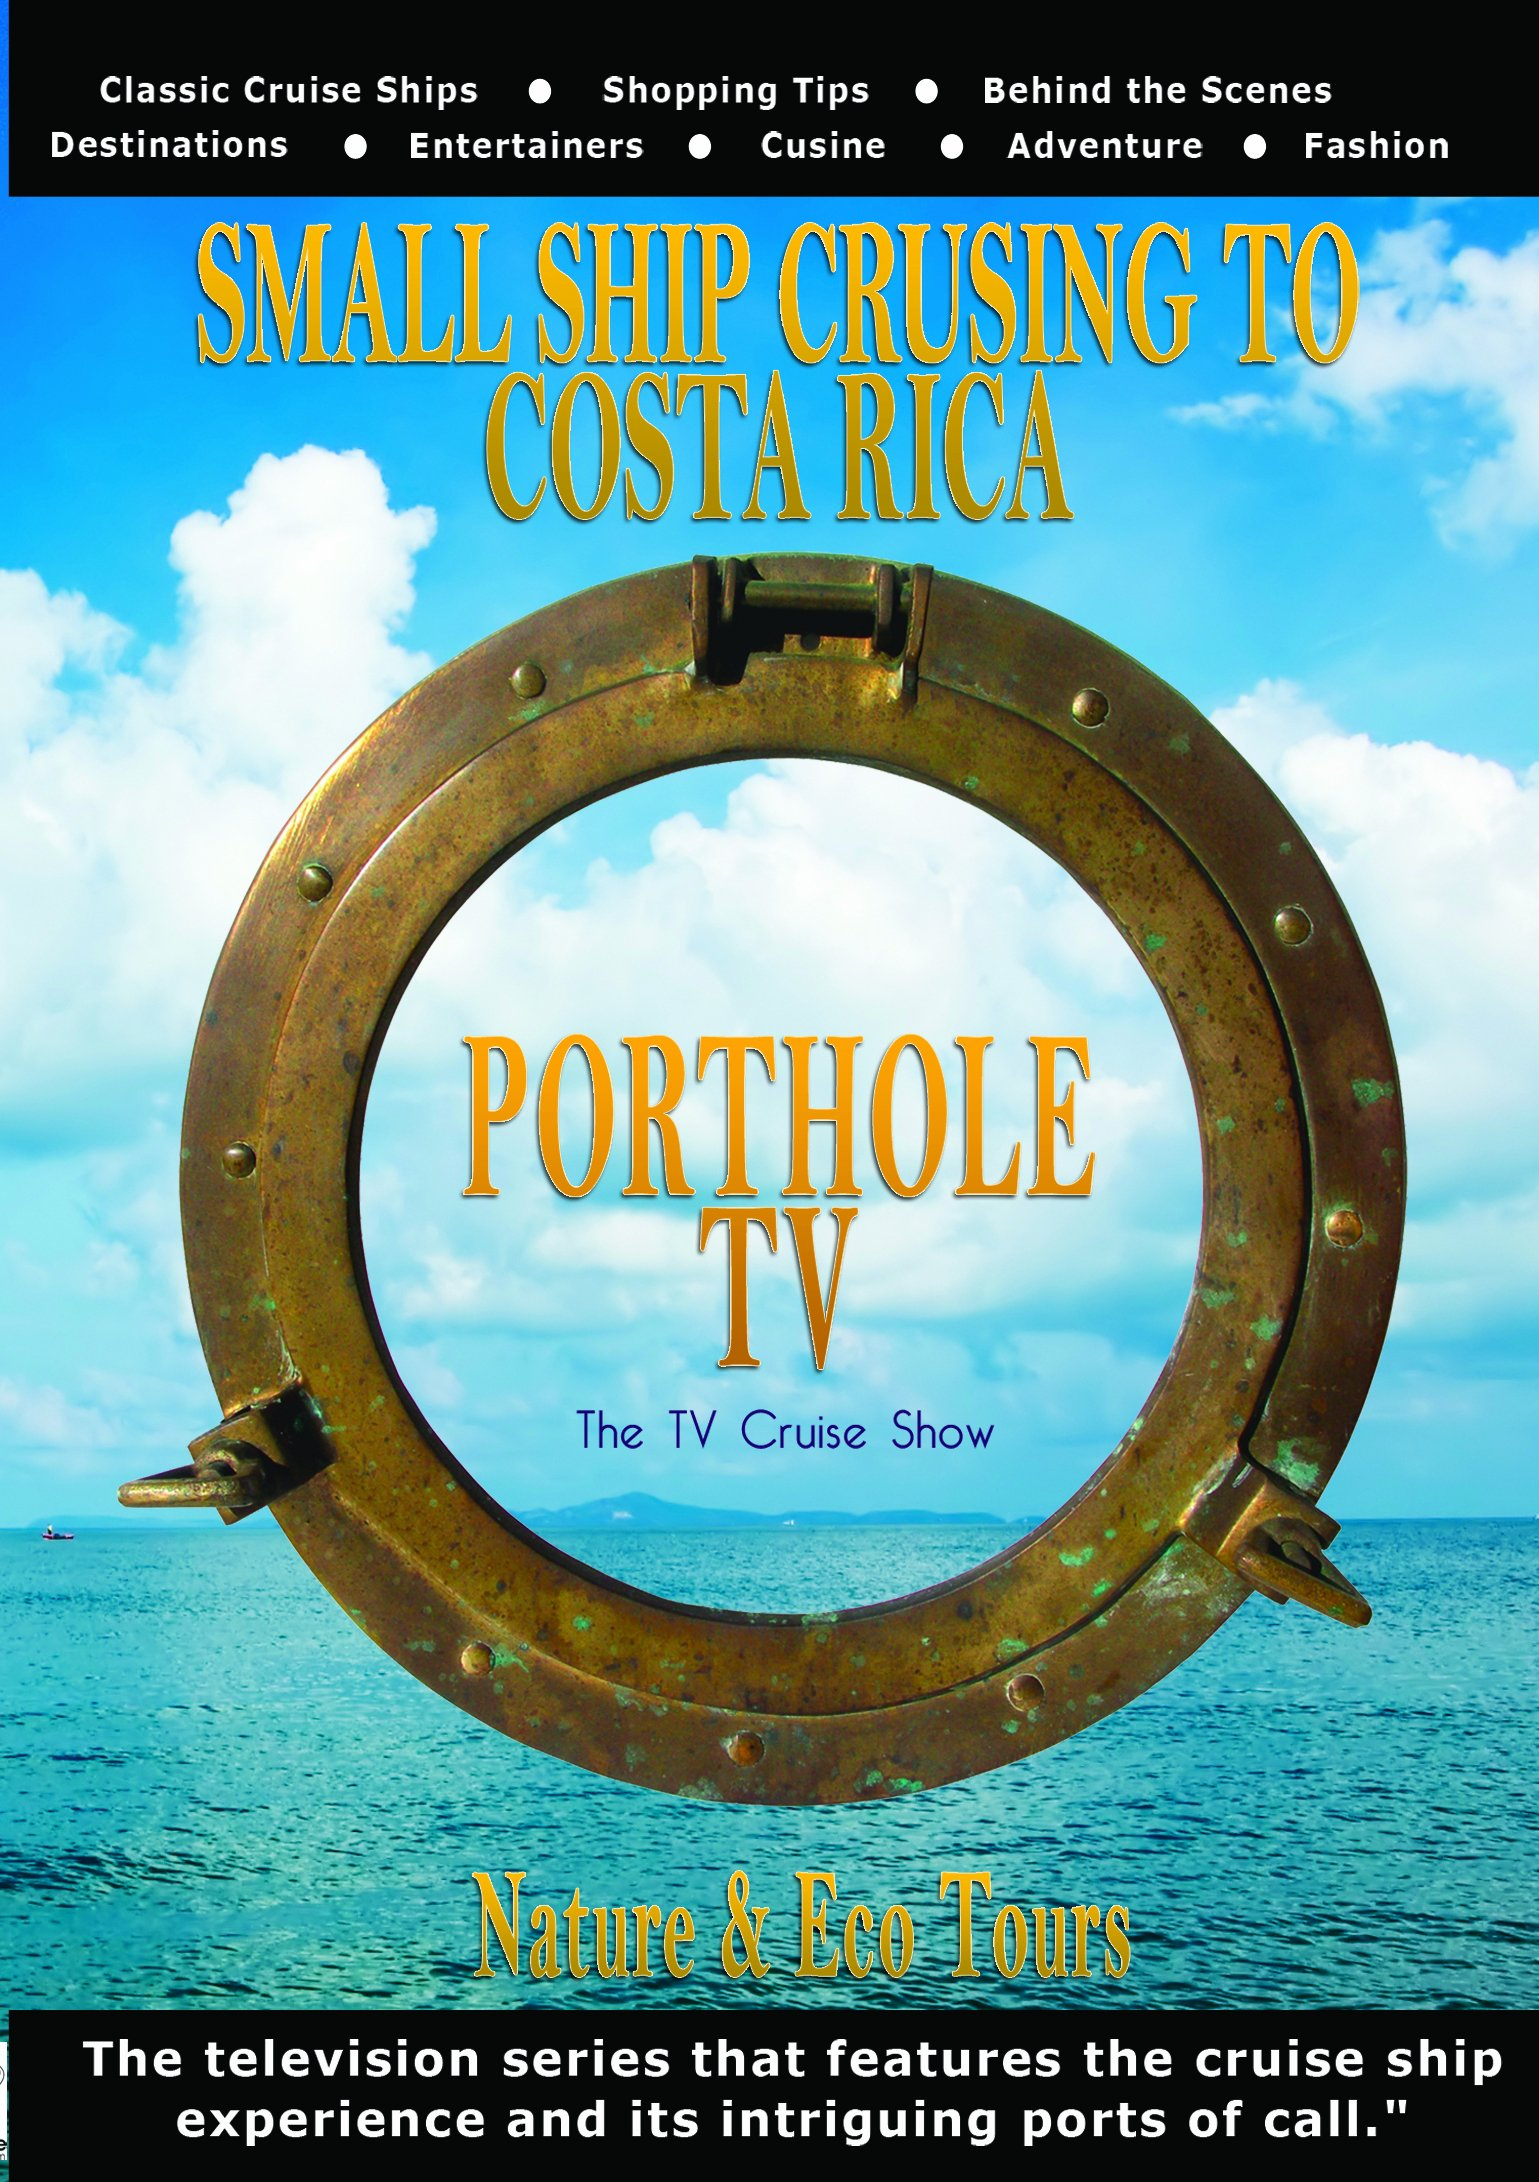 Porthole TV DVD Small ship cruising to Costa Rica